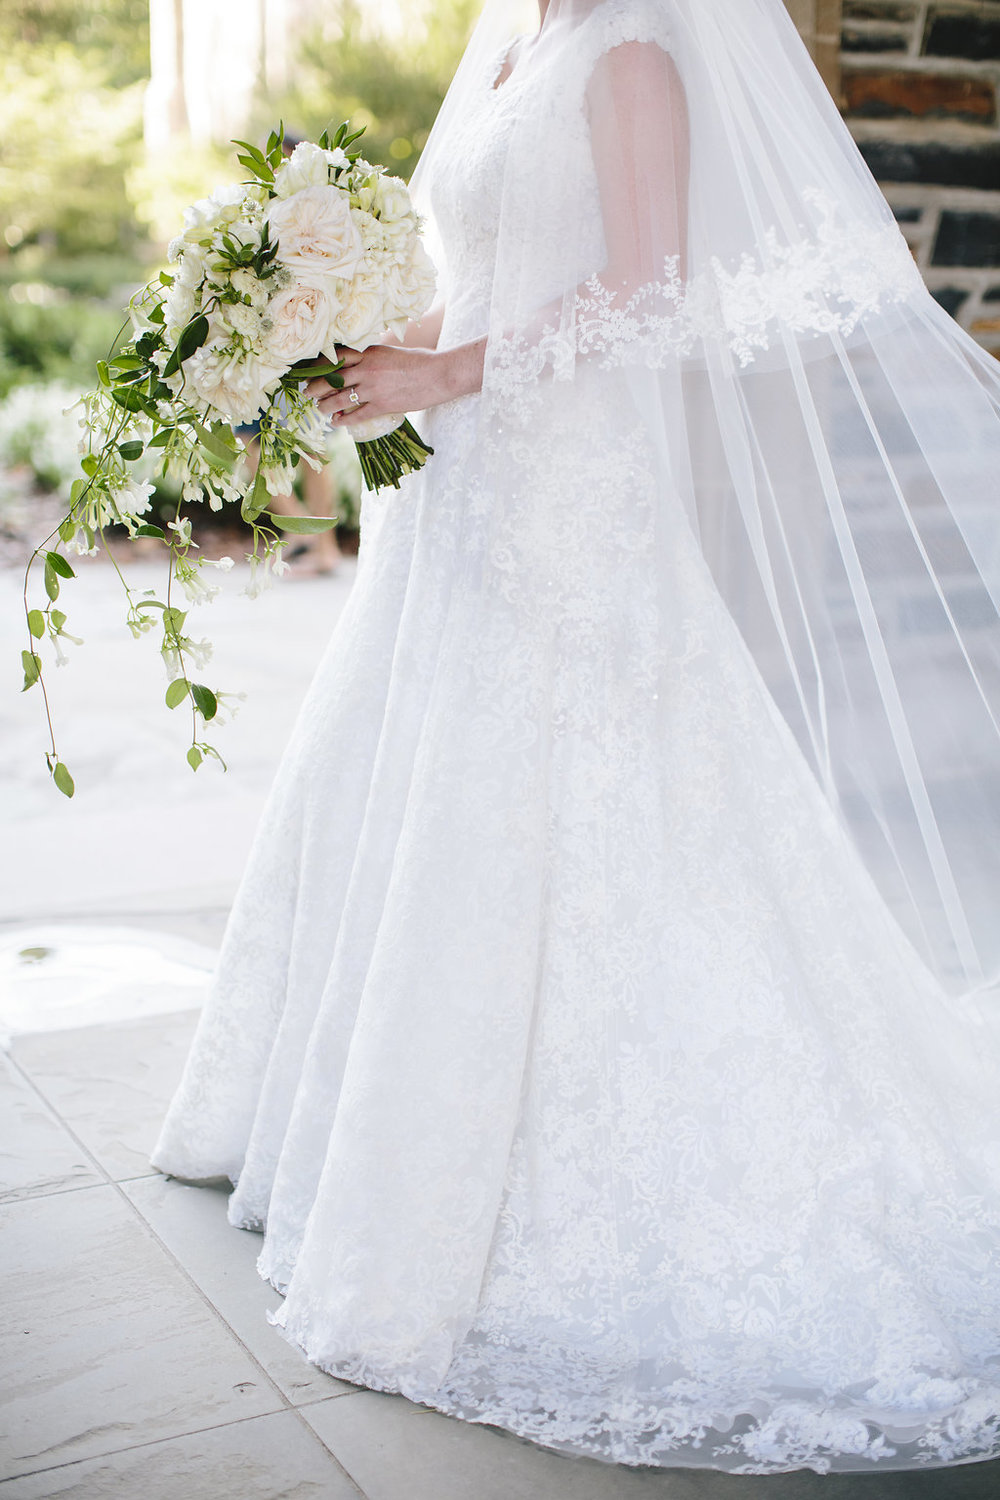 Bride in classic lace wedding gown with veil